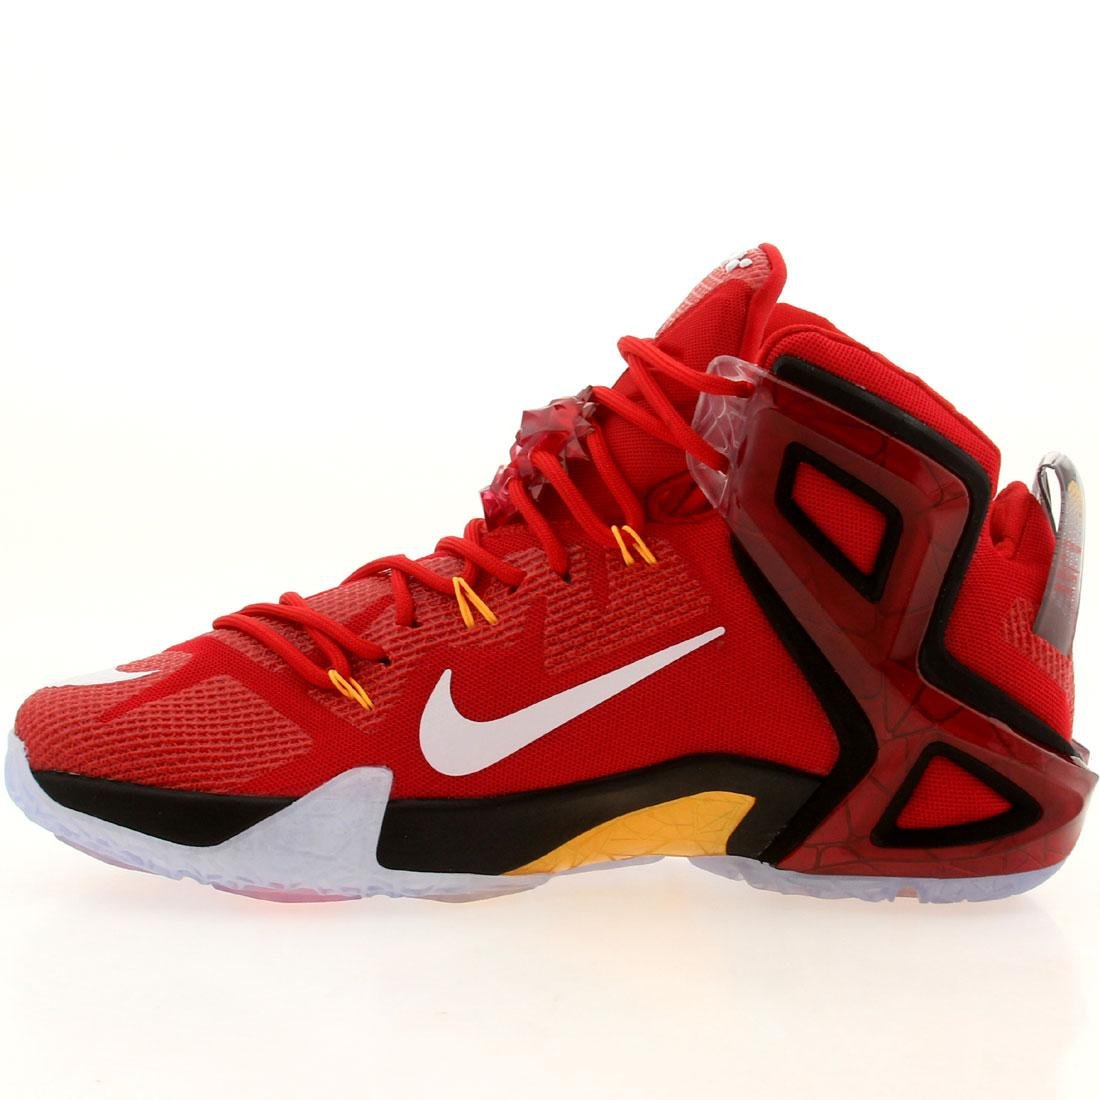 the latest e754a e5c49 Amazon.com  Nike Lebron 12 Elite - 724559 618  Clothing